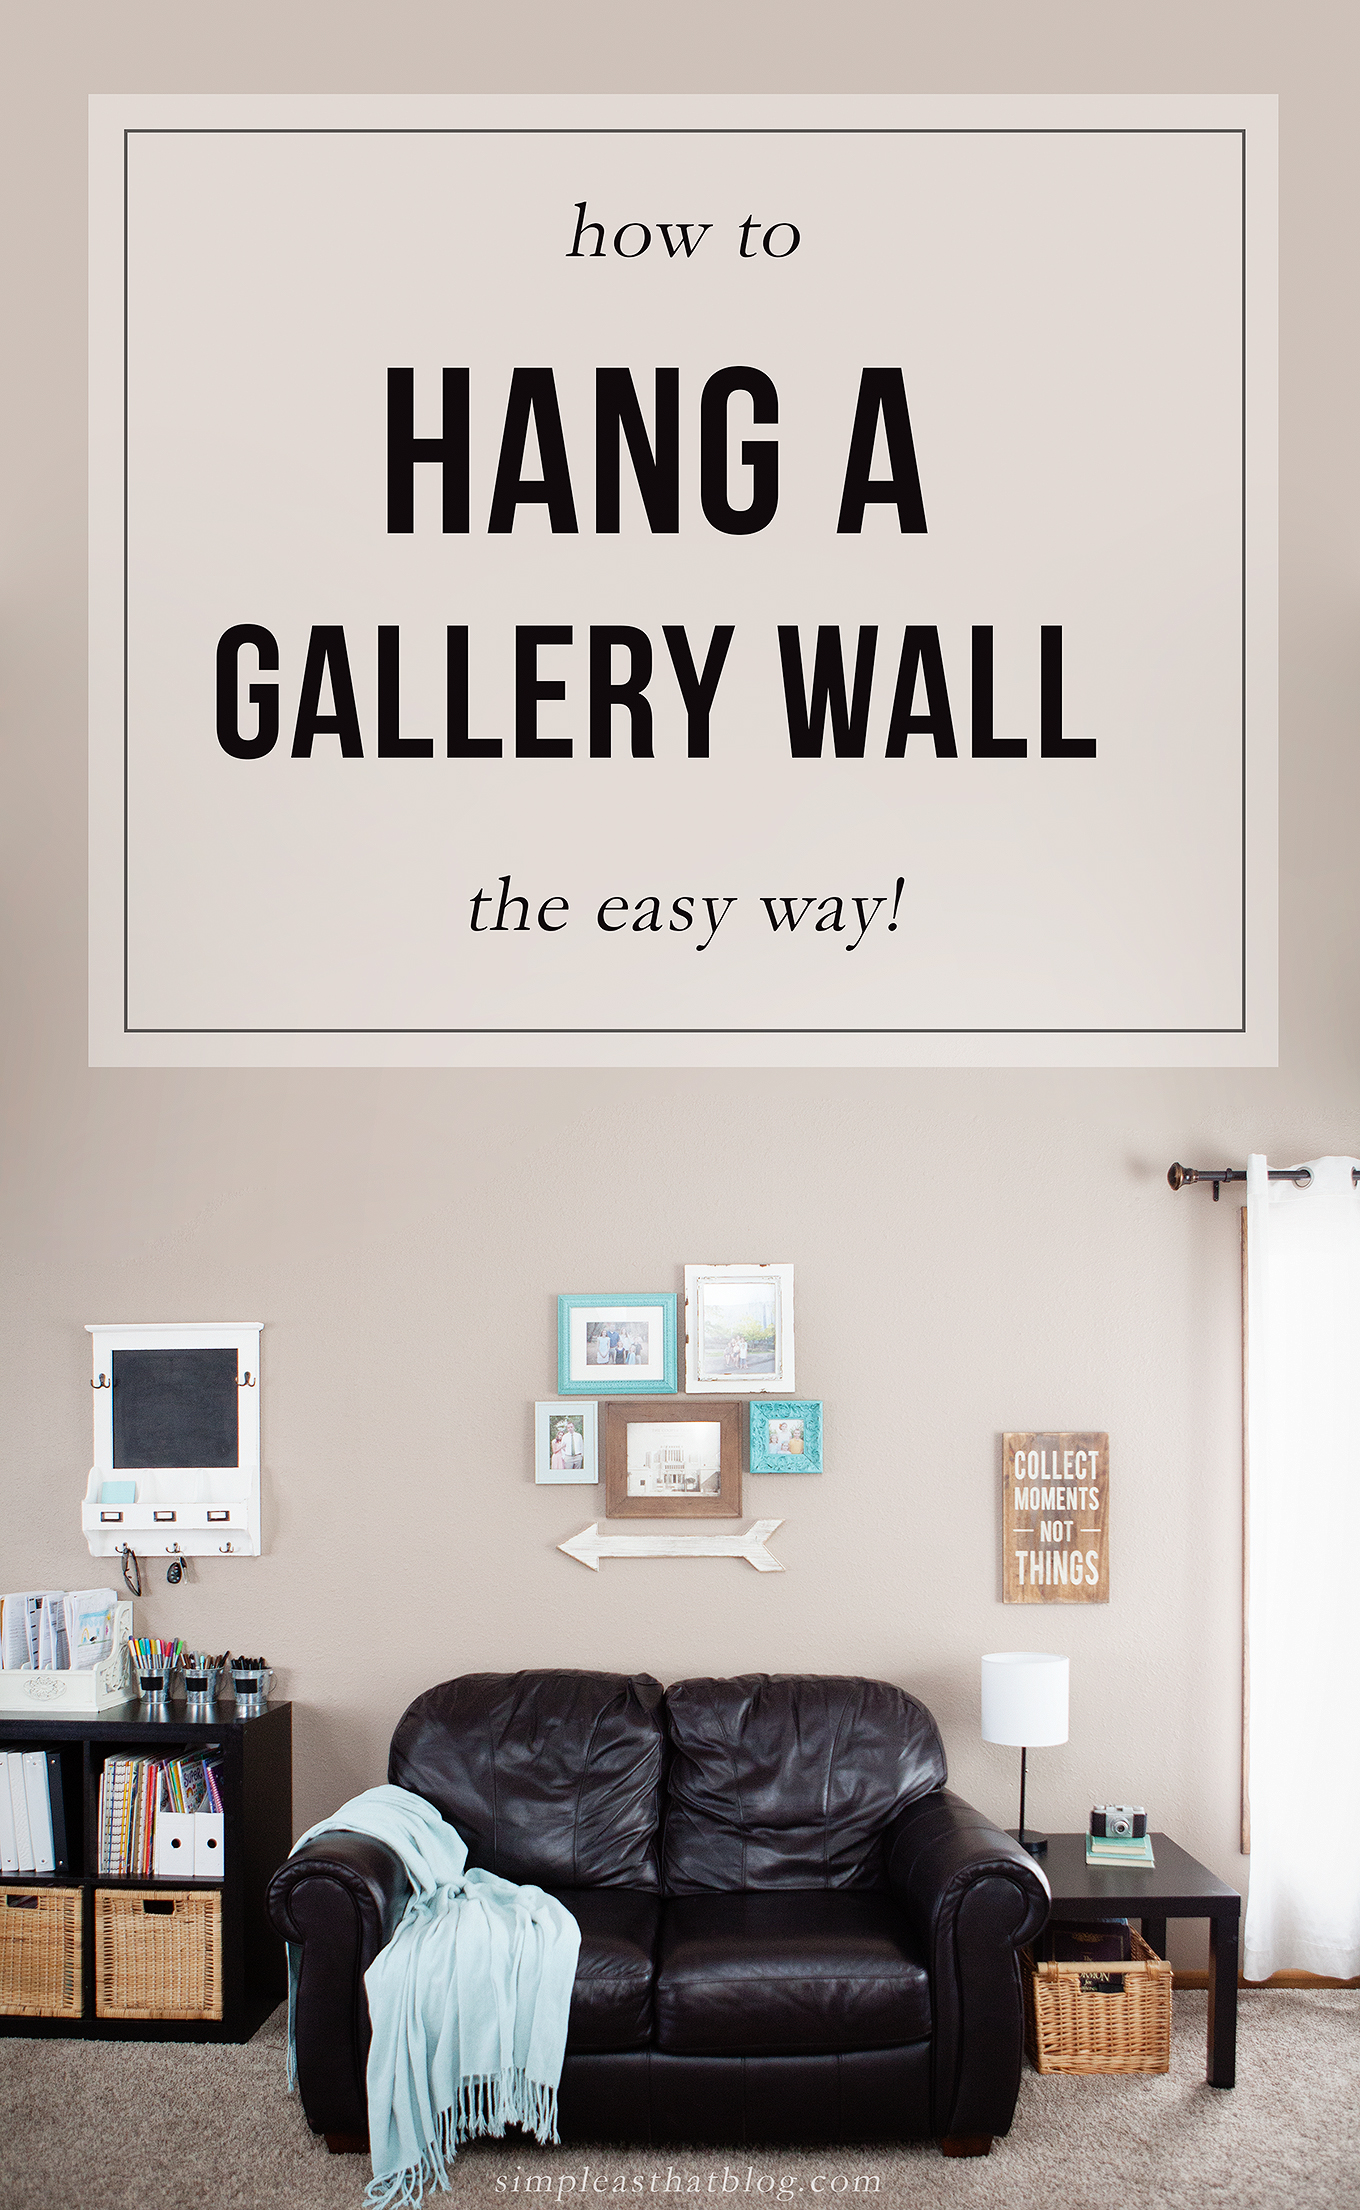 How Hang Gallery Wall Easy Way